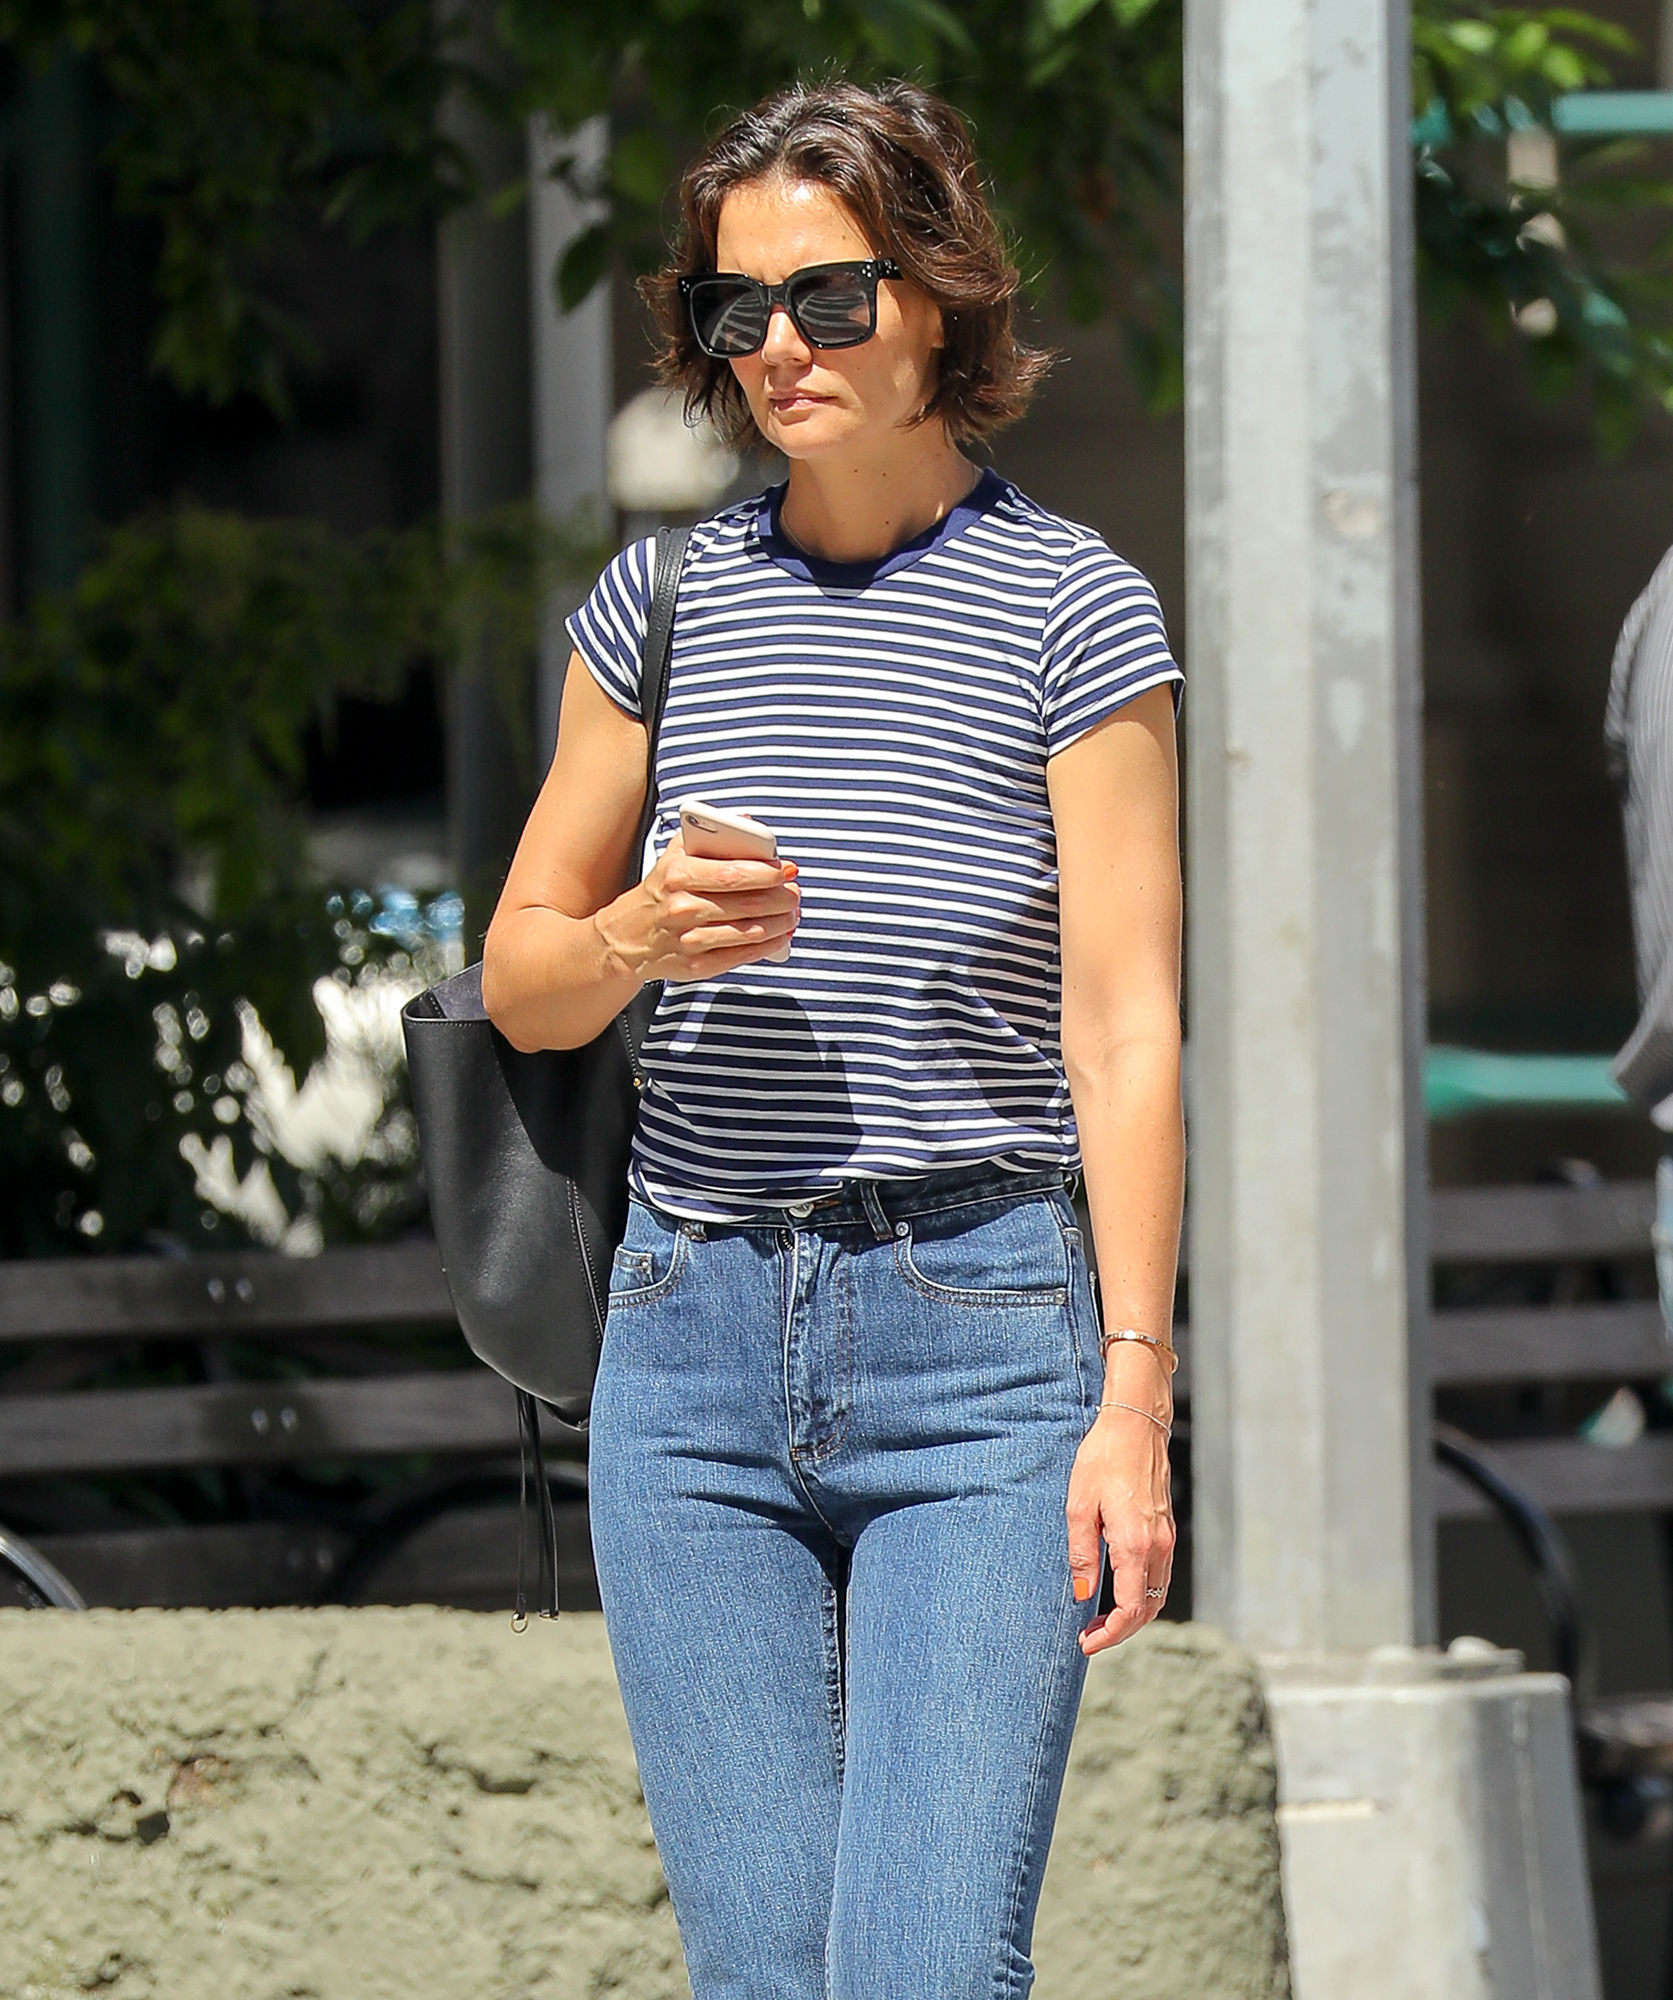 Katie Holmes was spotted taking stroll around after split from Jamie Foxx